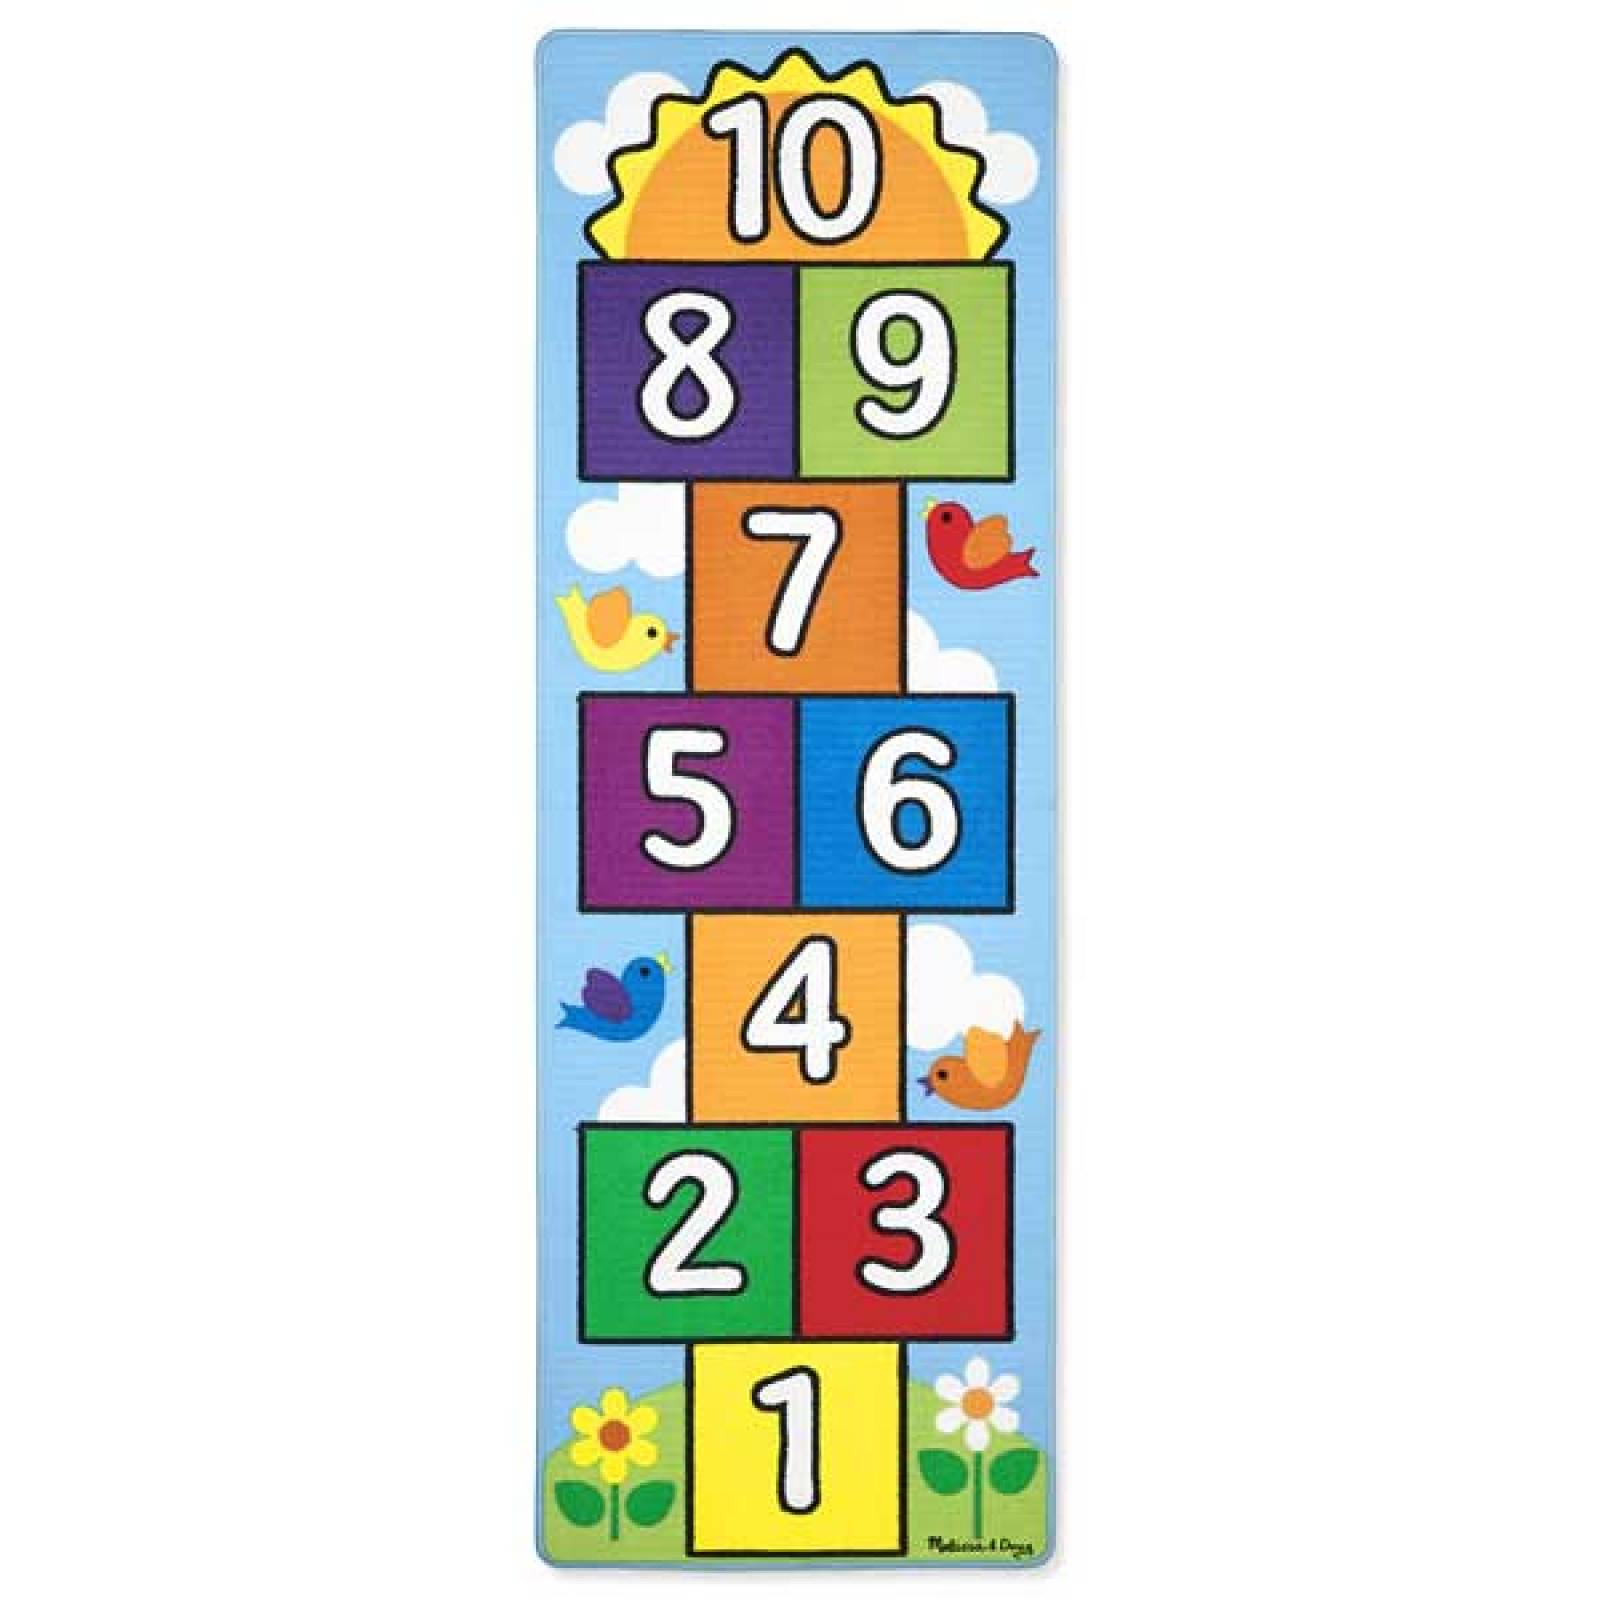 Hop And Count Hopscotch Rug Melissa & Doug 3+ thumbnails